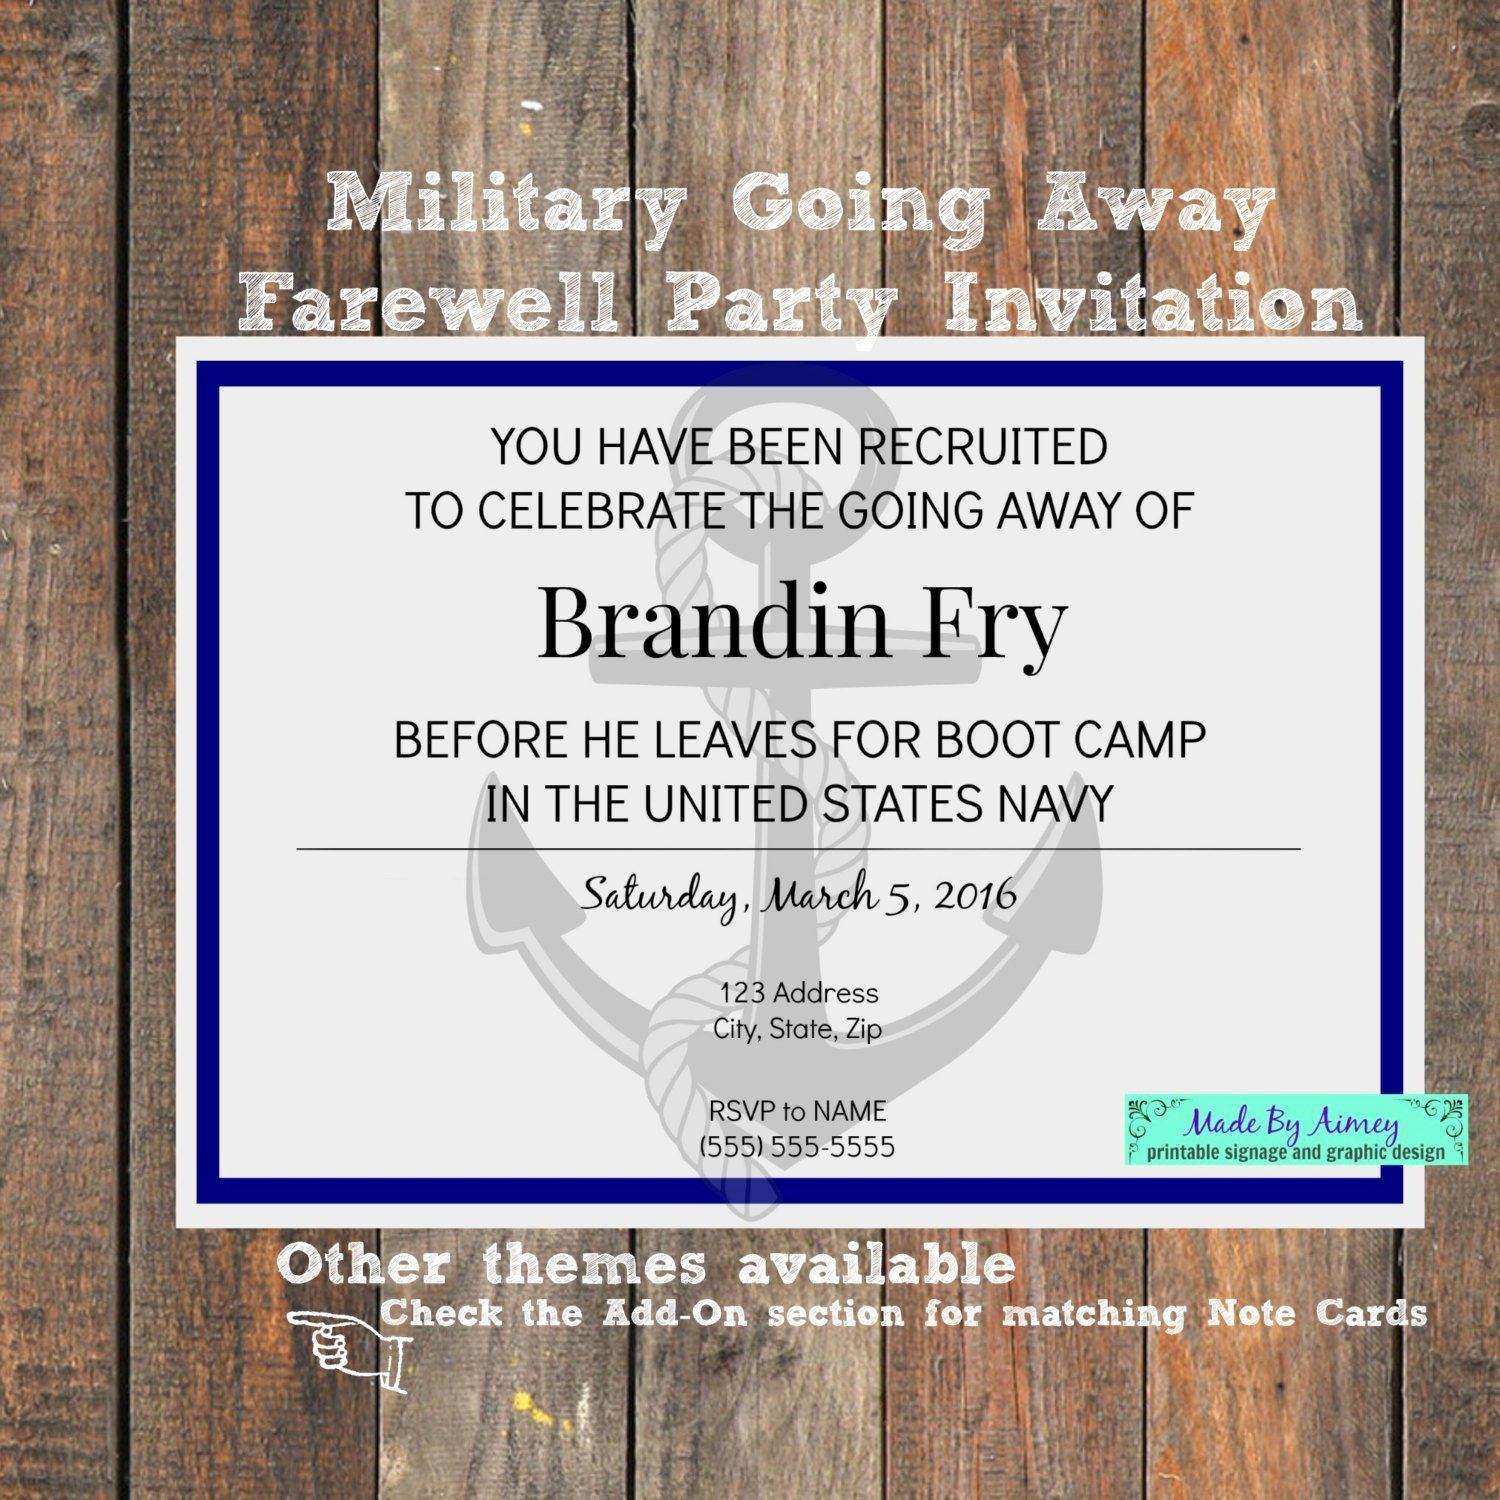 Going Away Party Invitation Lovely Military Going Away Farewell Party Invitation